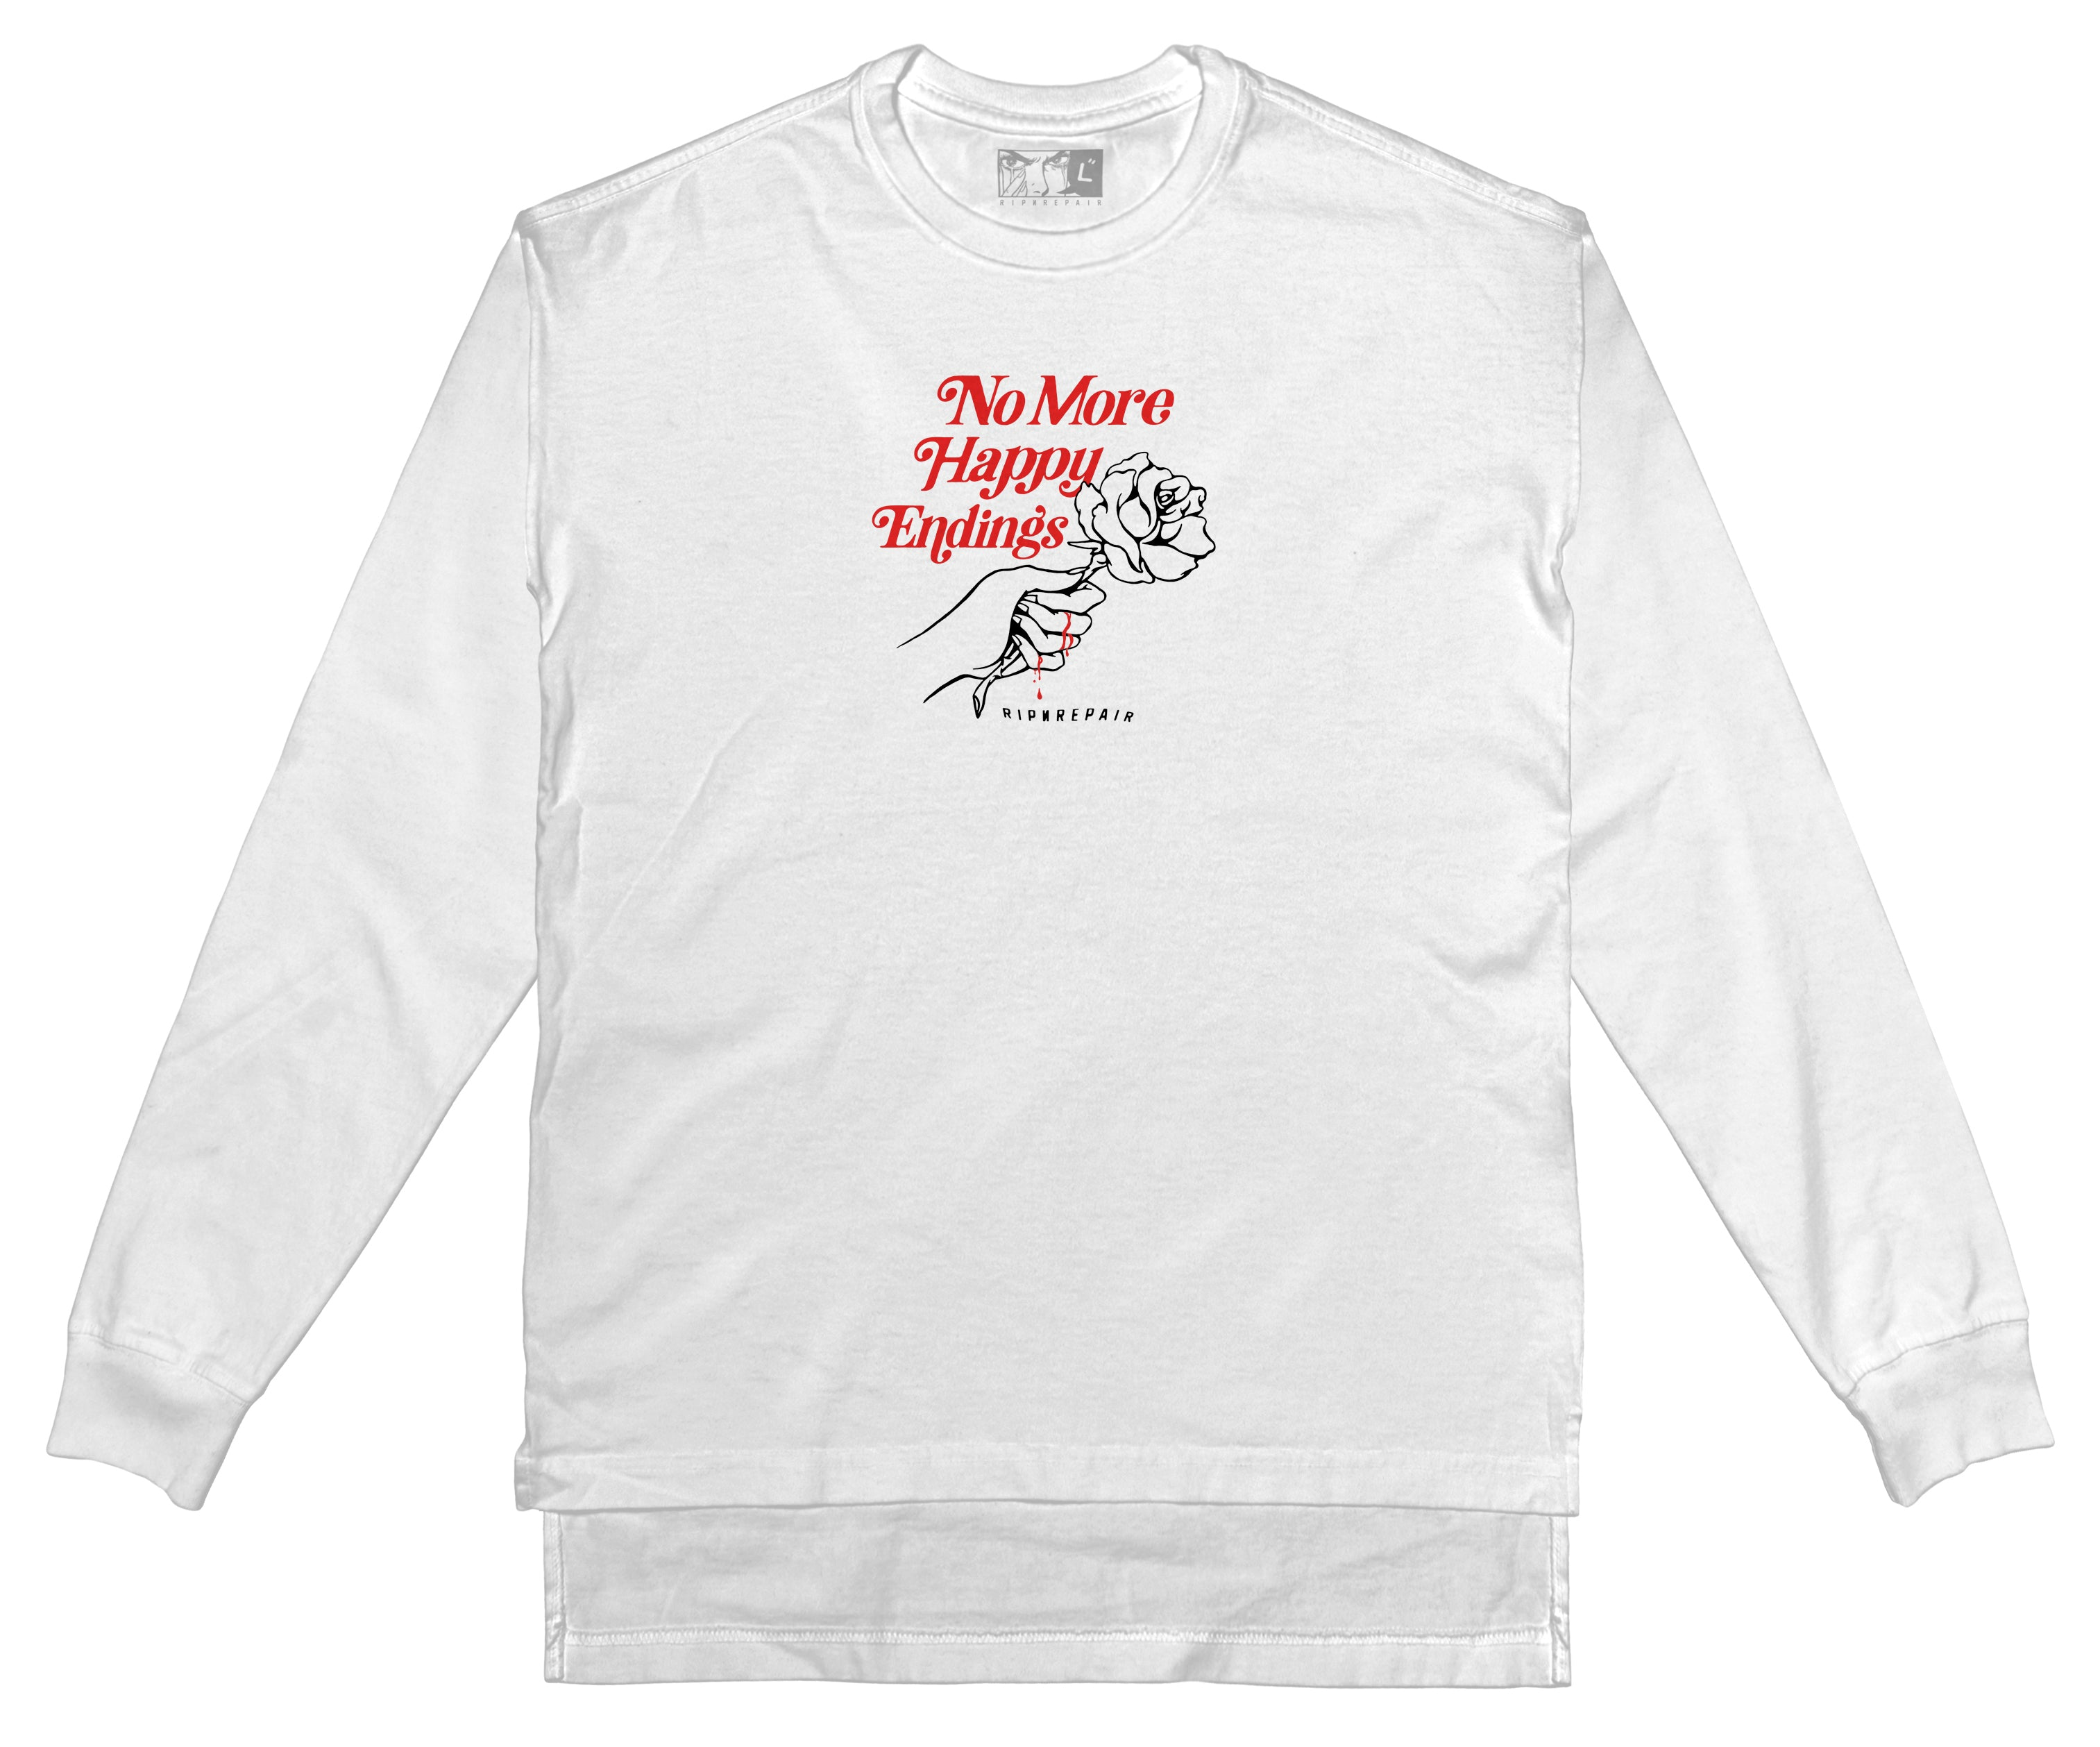 No More Happy Endings - Long Sleeve (WHITE) - RIPNRPR